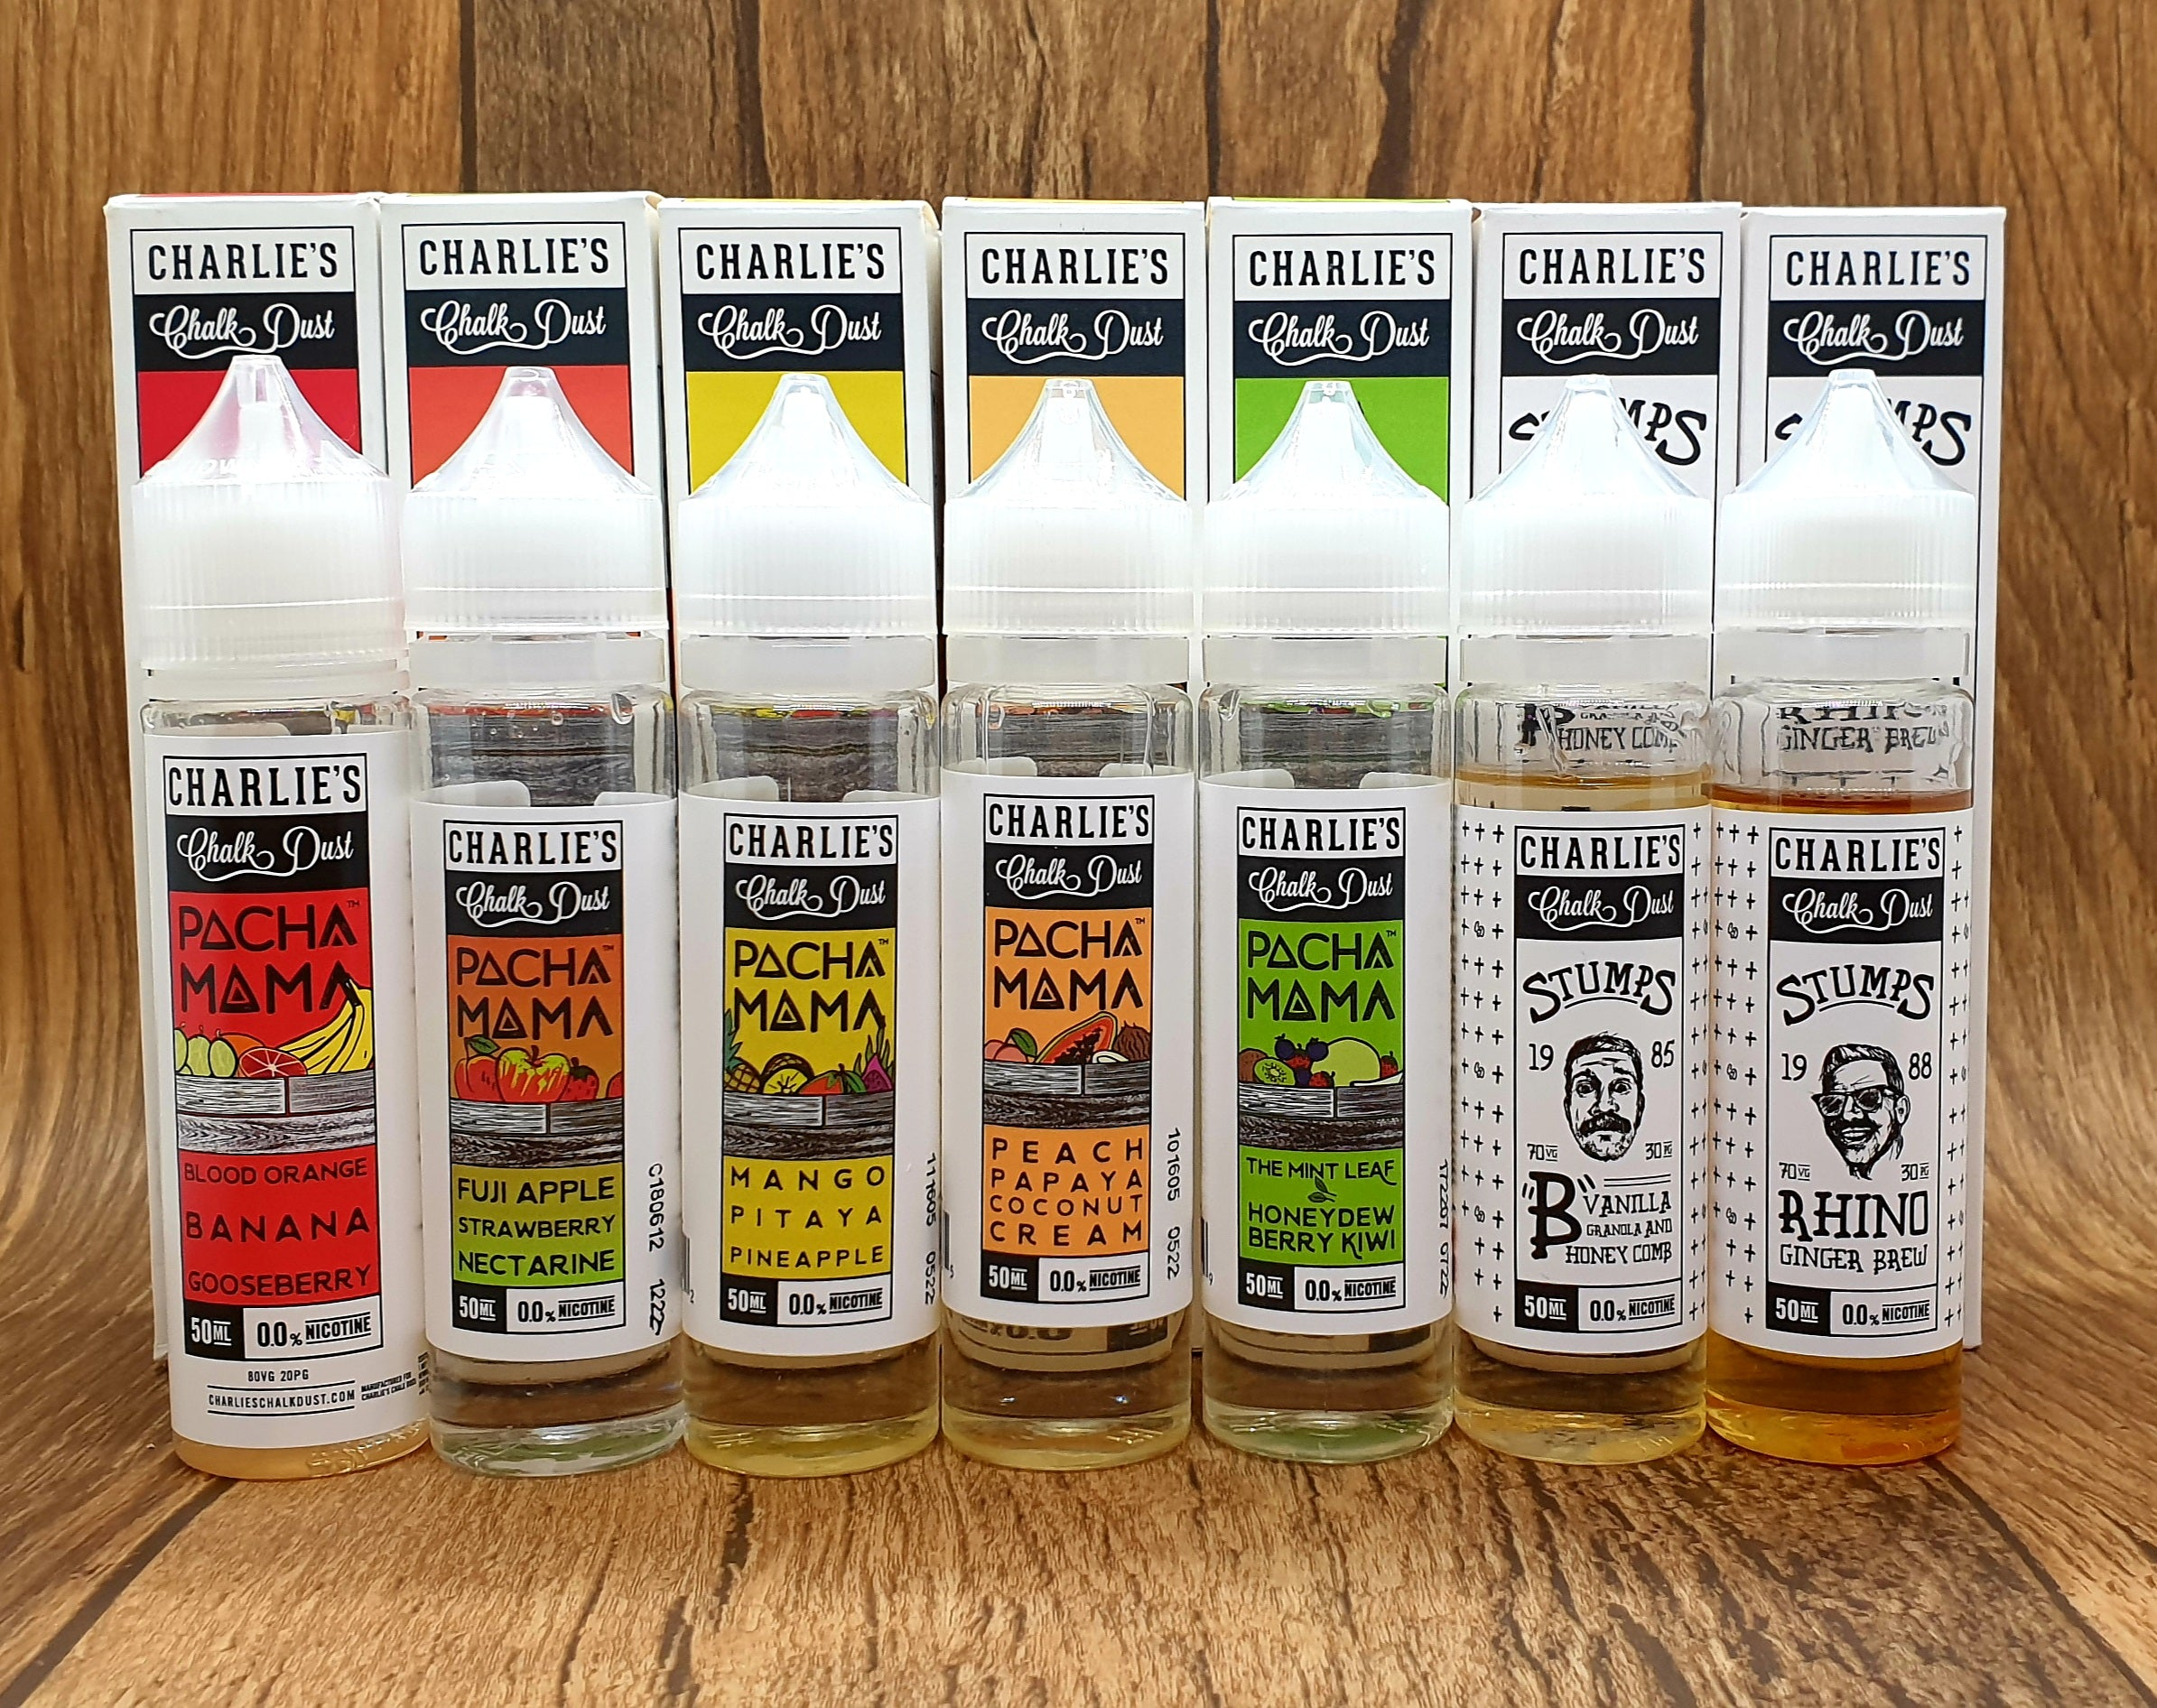 Charlie's Chalk Dust - Pacha Mama Blood Orange Banana 50ml ( Orange sanguine, Banane, Myrtille )